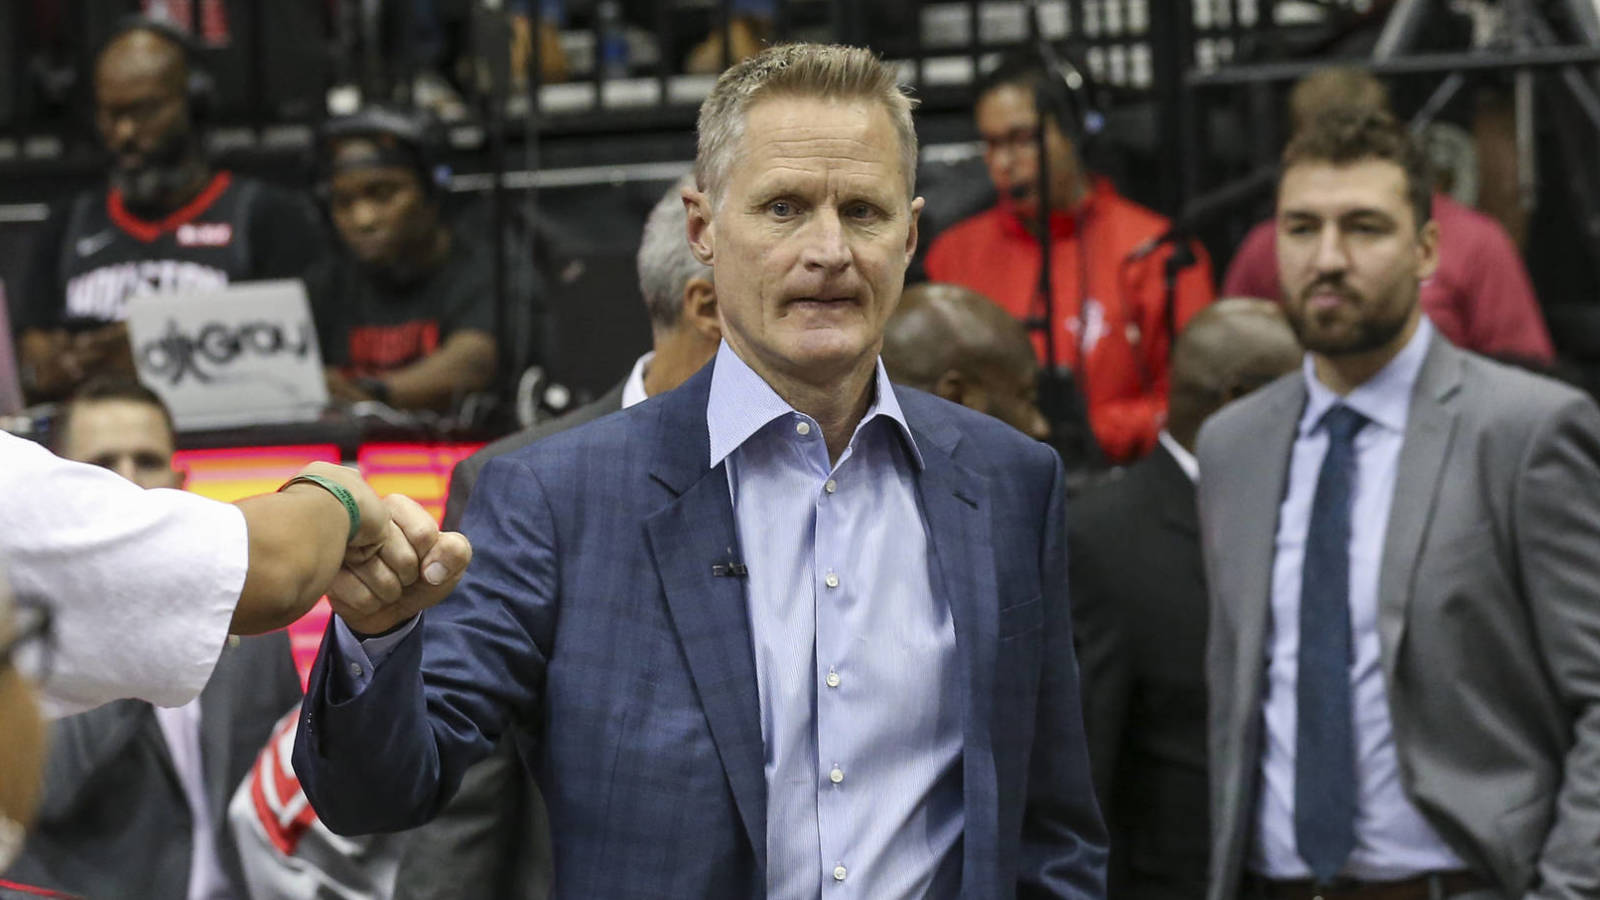 steve-kerr-took-swipe-rockets-over-offensive-style.jpg?v=1